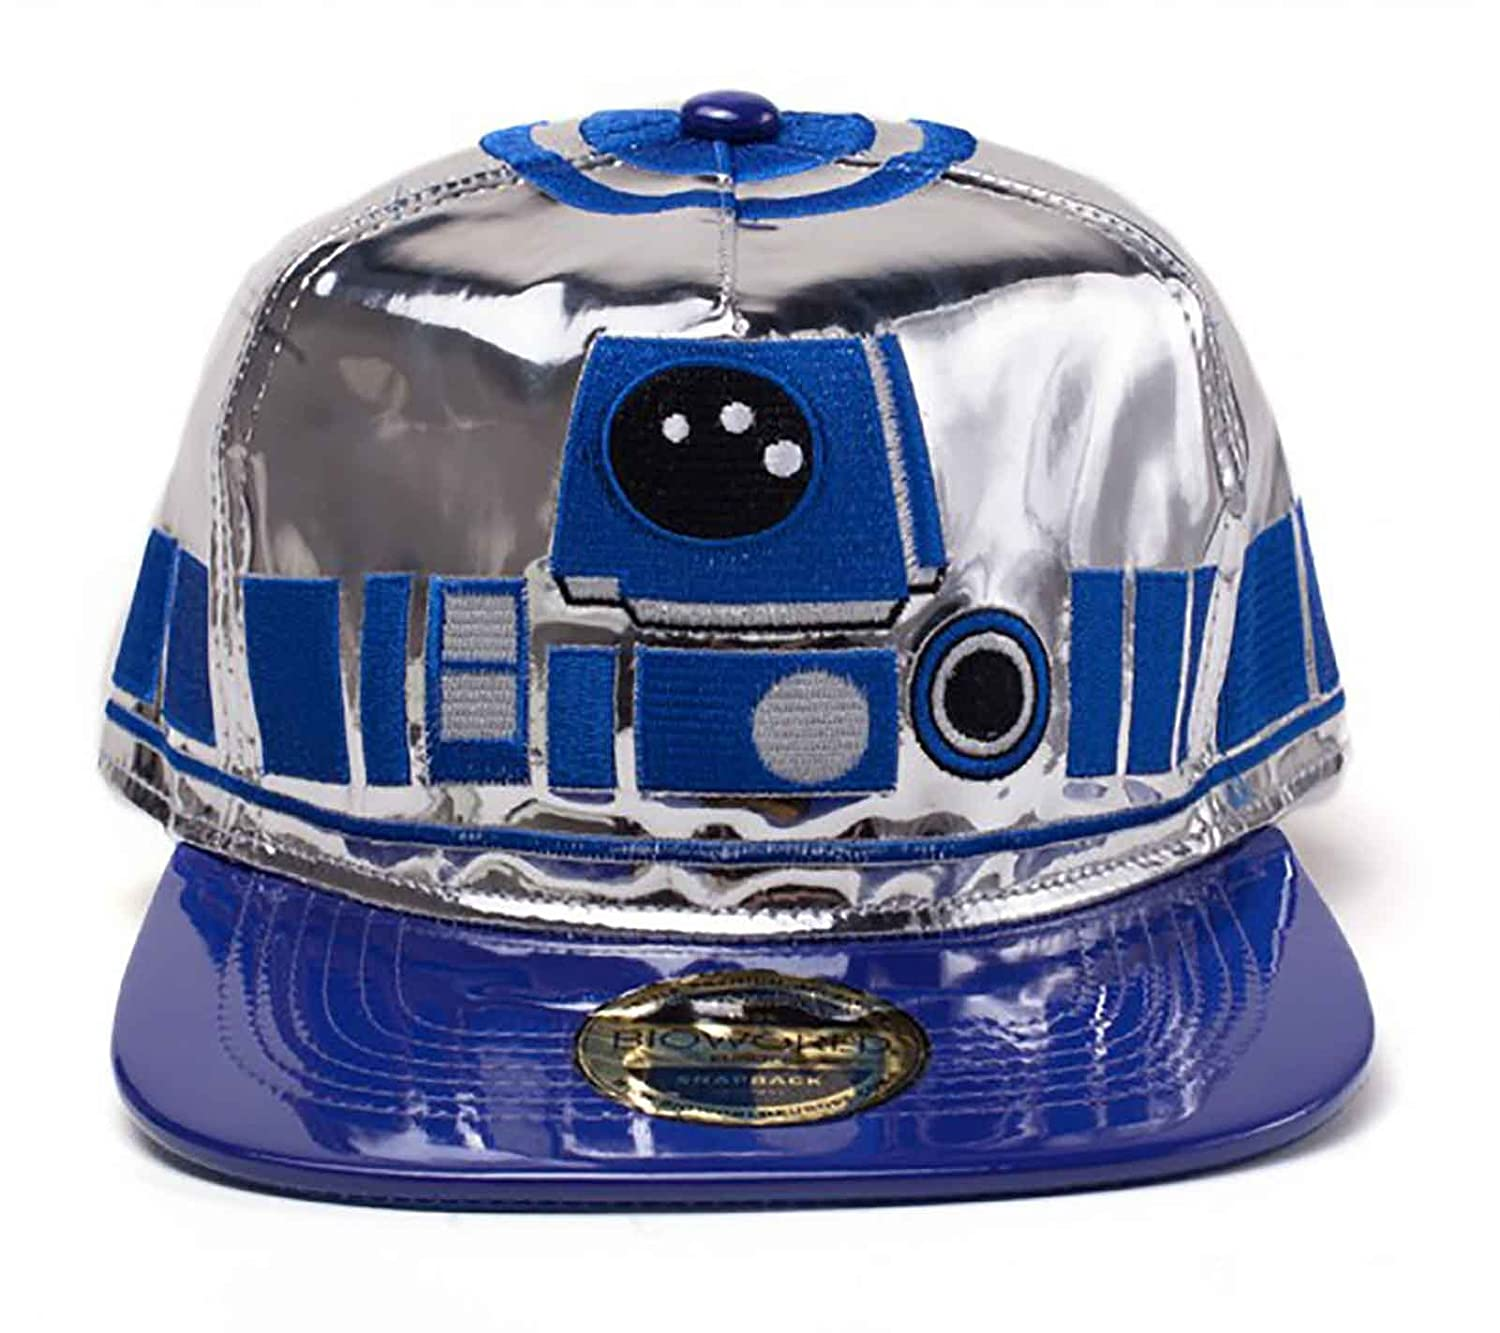 Amazon.com  Star Wars Baseball Cap R2-D2 Droid Body Metal Look Official  Snapback Blue  Clothing 098c1edfb6a